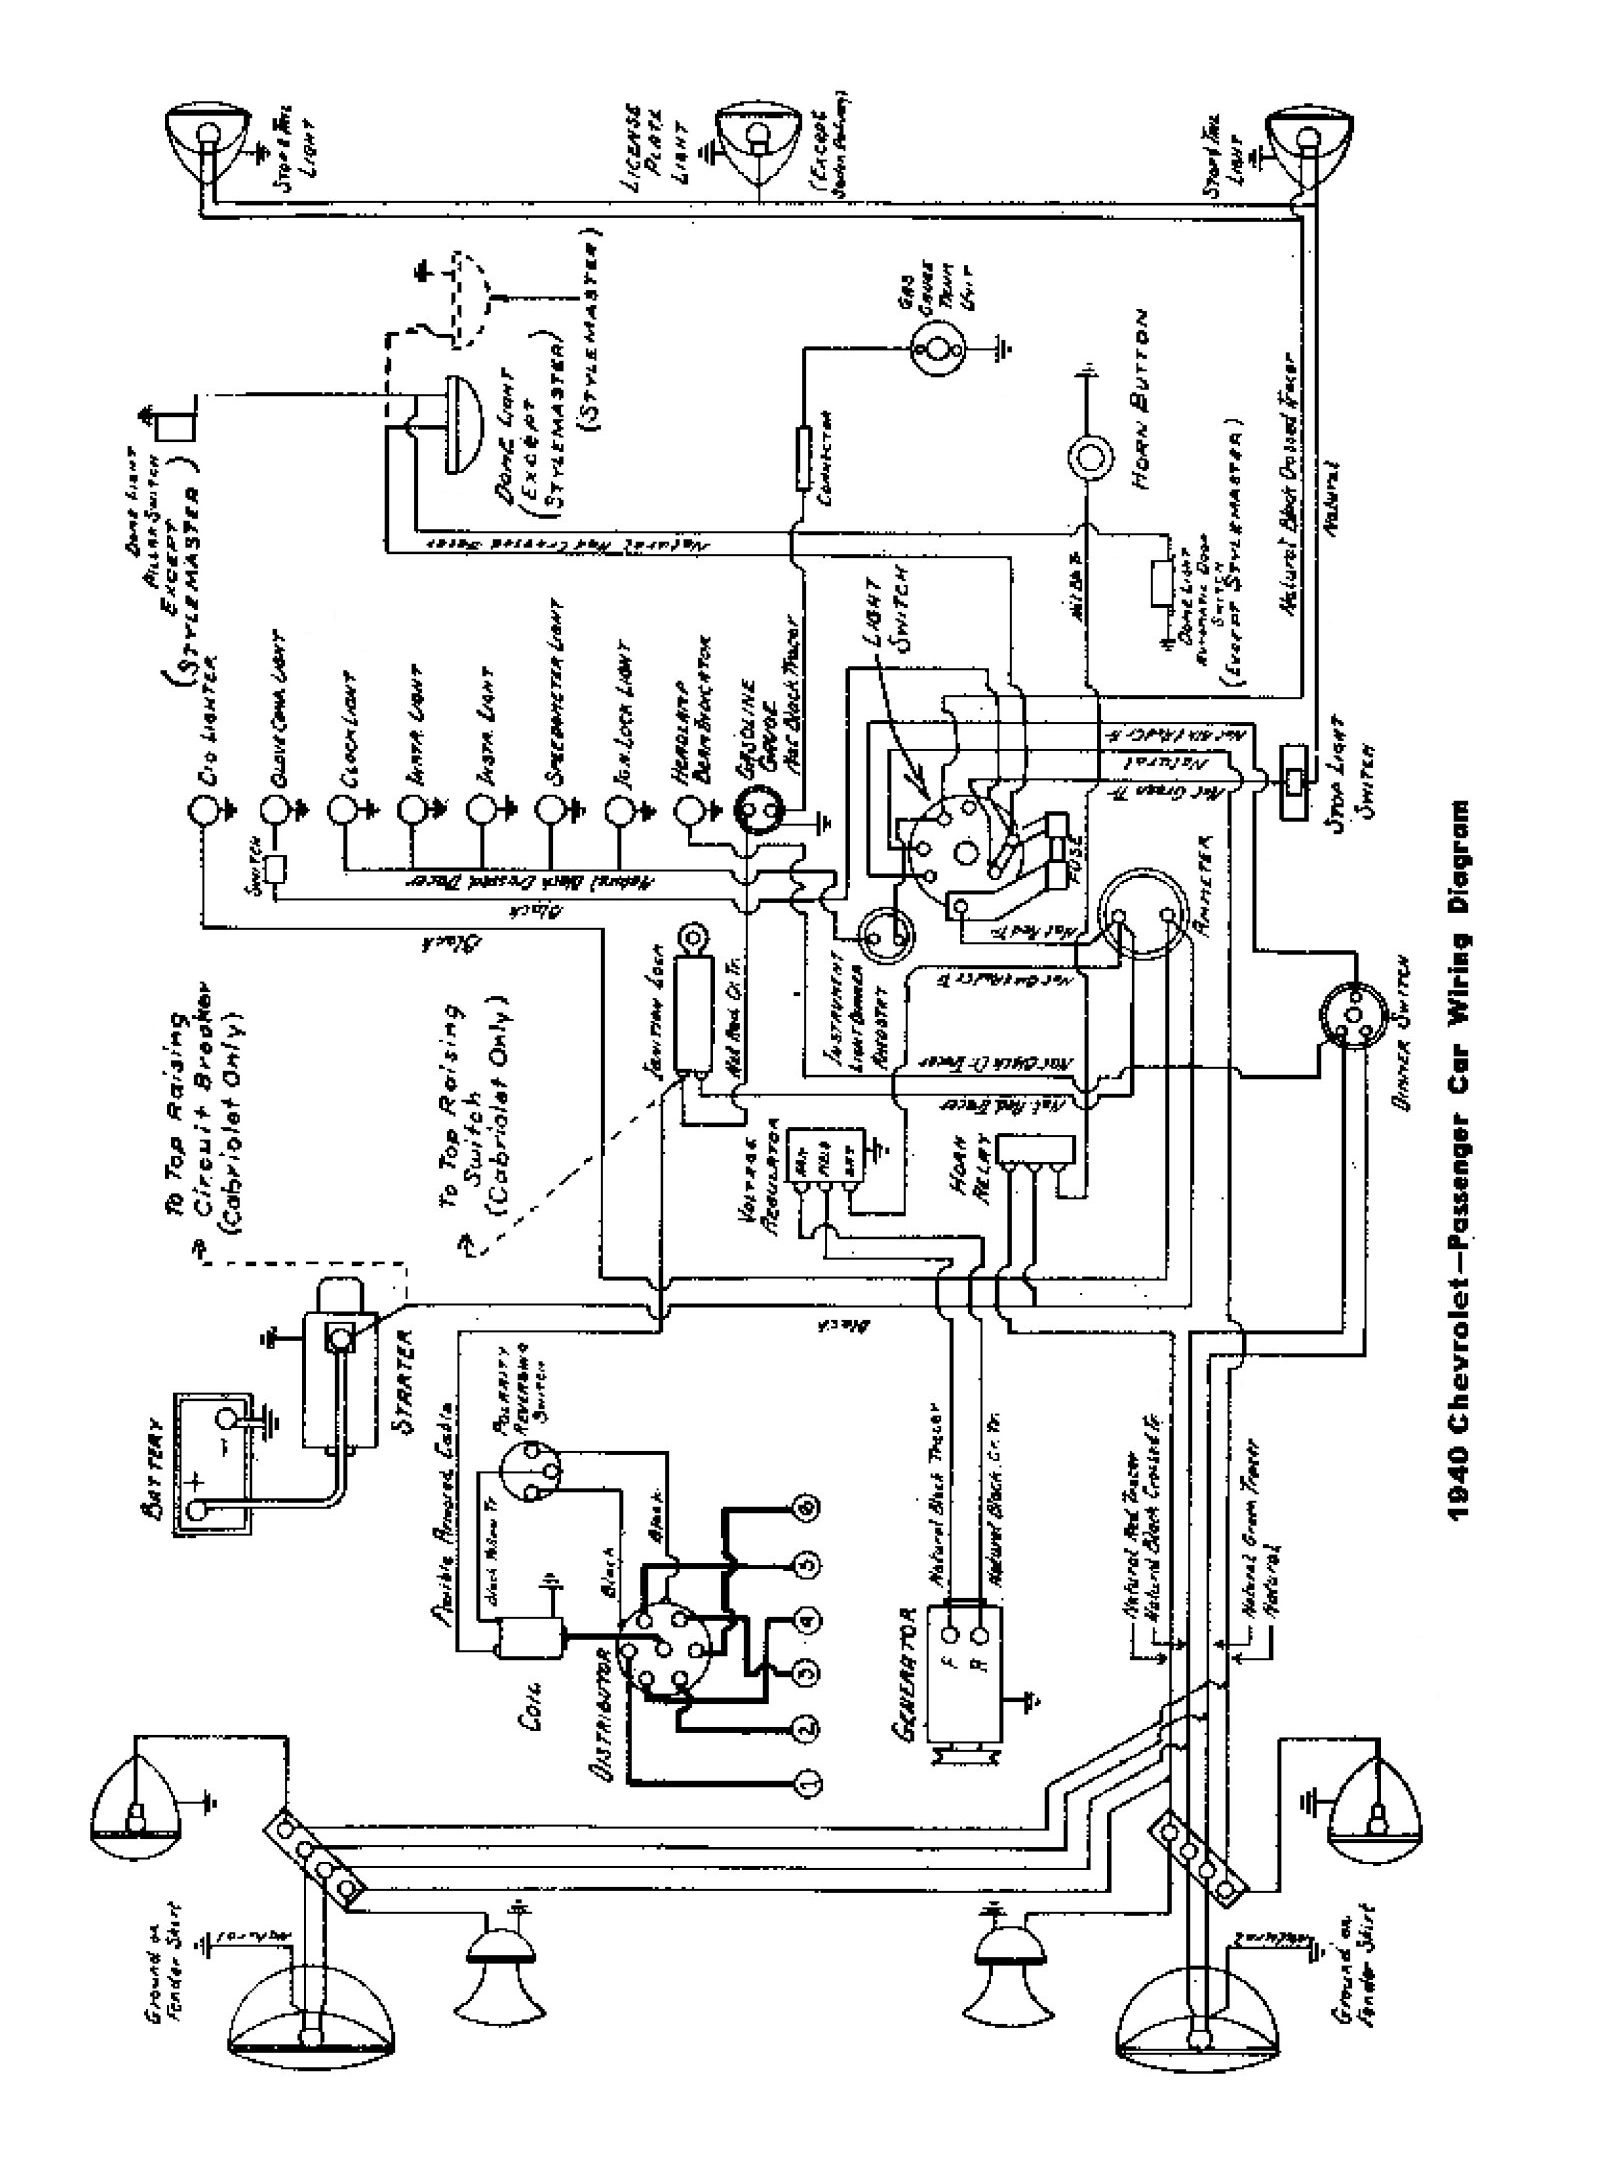 hight resolution of 1931 cadillac wiring diagram wiring diagram used 1931 buick wiring diagram